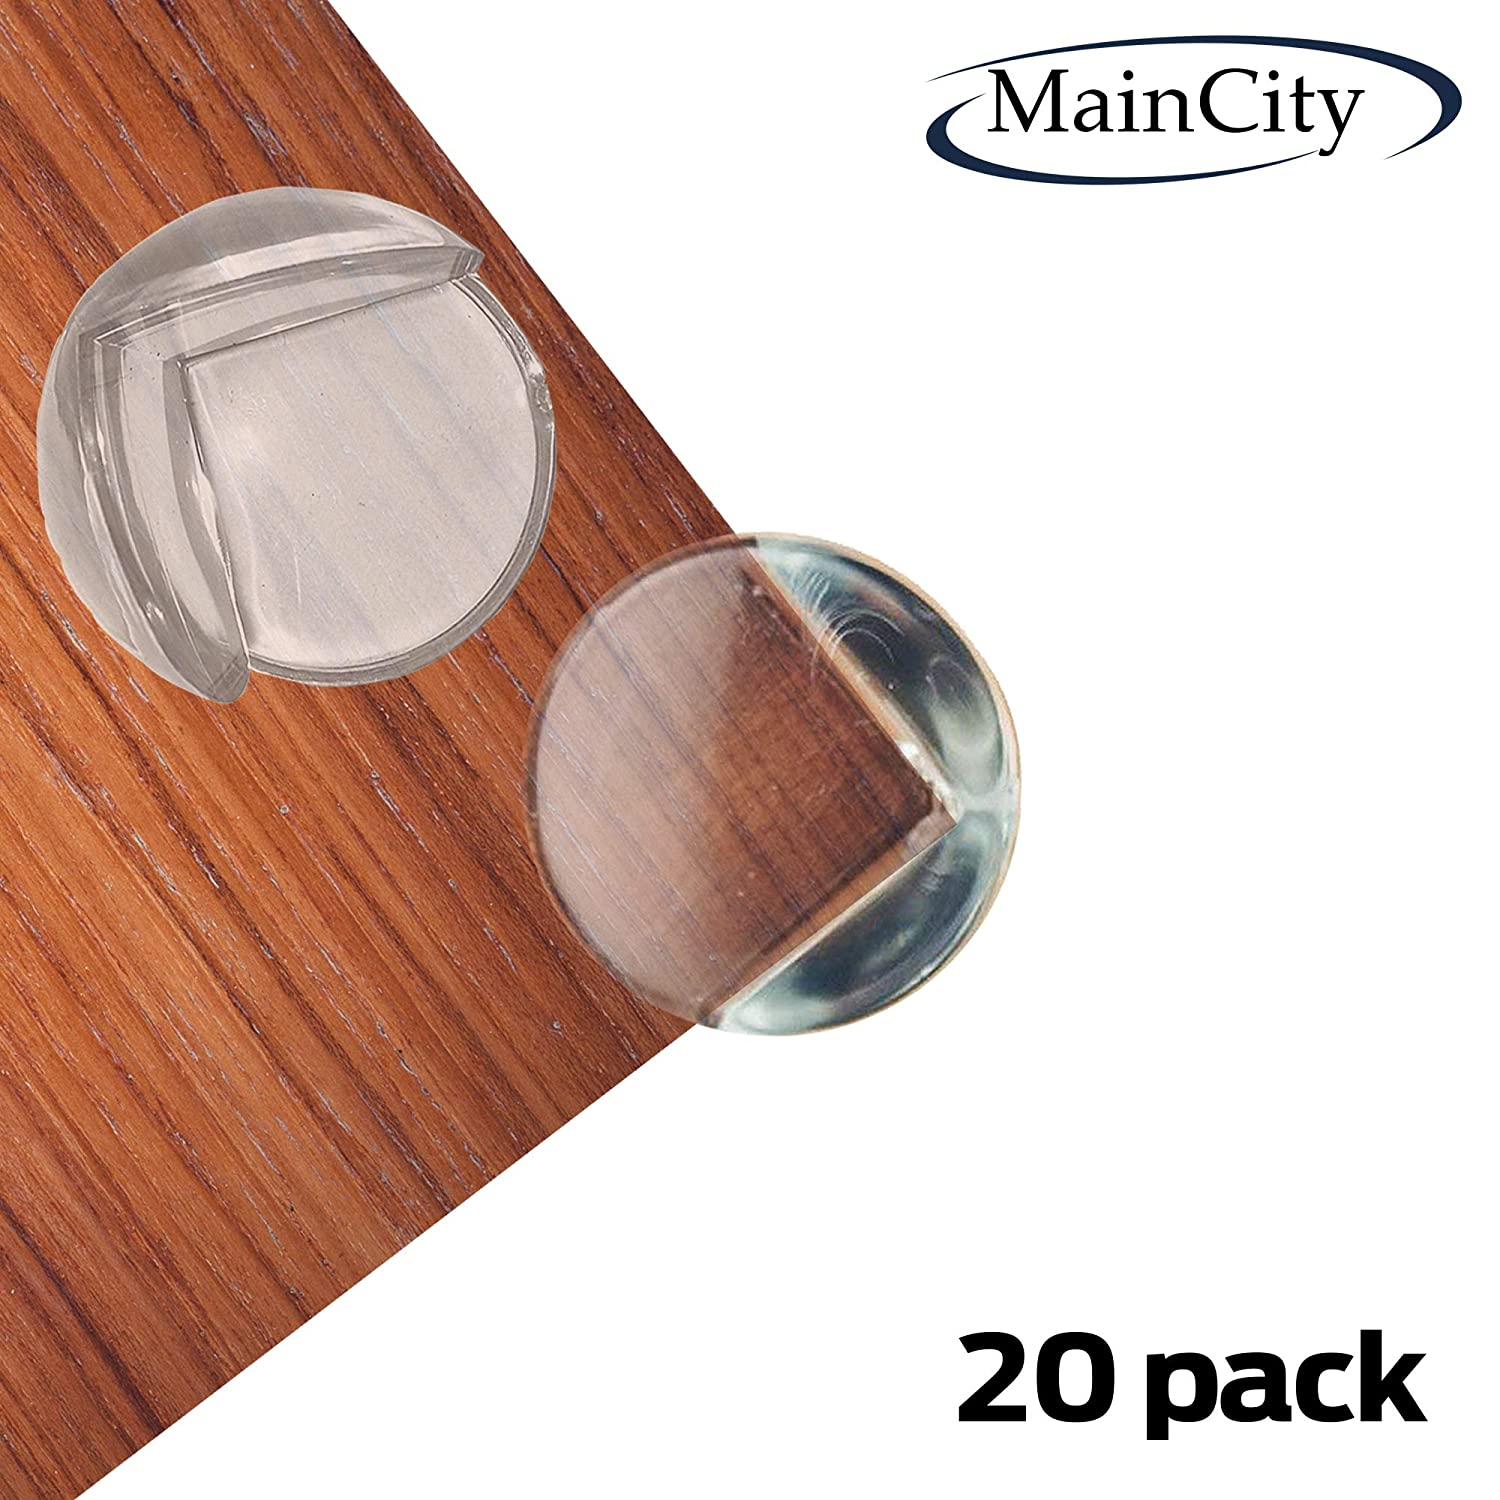 MainCity Clear Corner Guards Protectors for Babies, Kids and Children. Stop Child Head Injuries with Safety Bumpers (20-Pack) Prevent Injuries from Tables, Furniture & Sharp Edges. Corners Proofing Ltd.